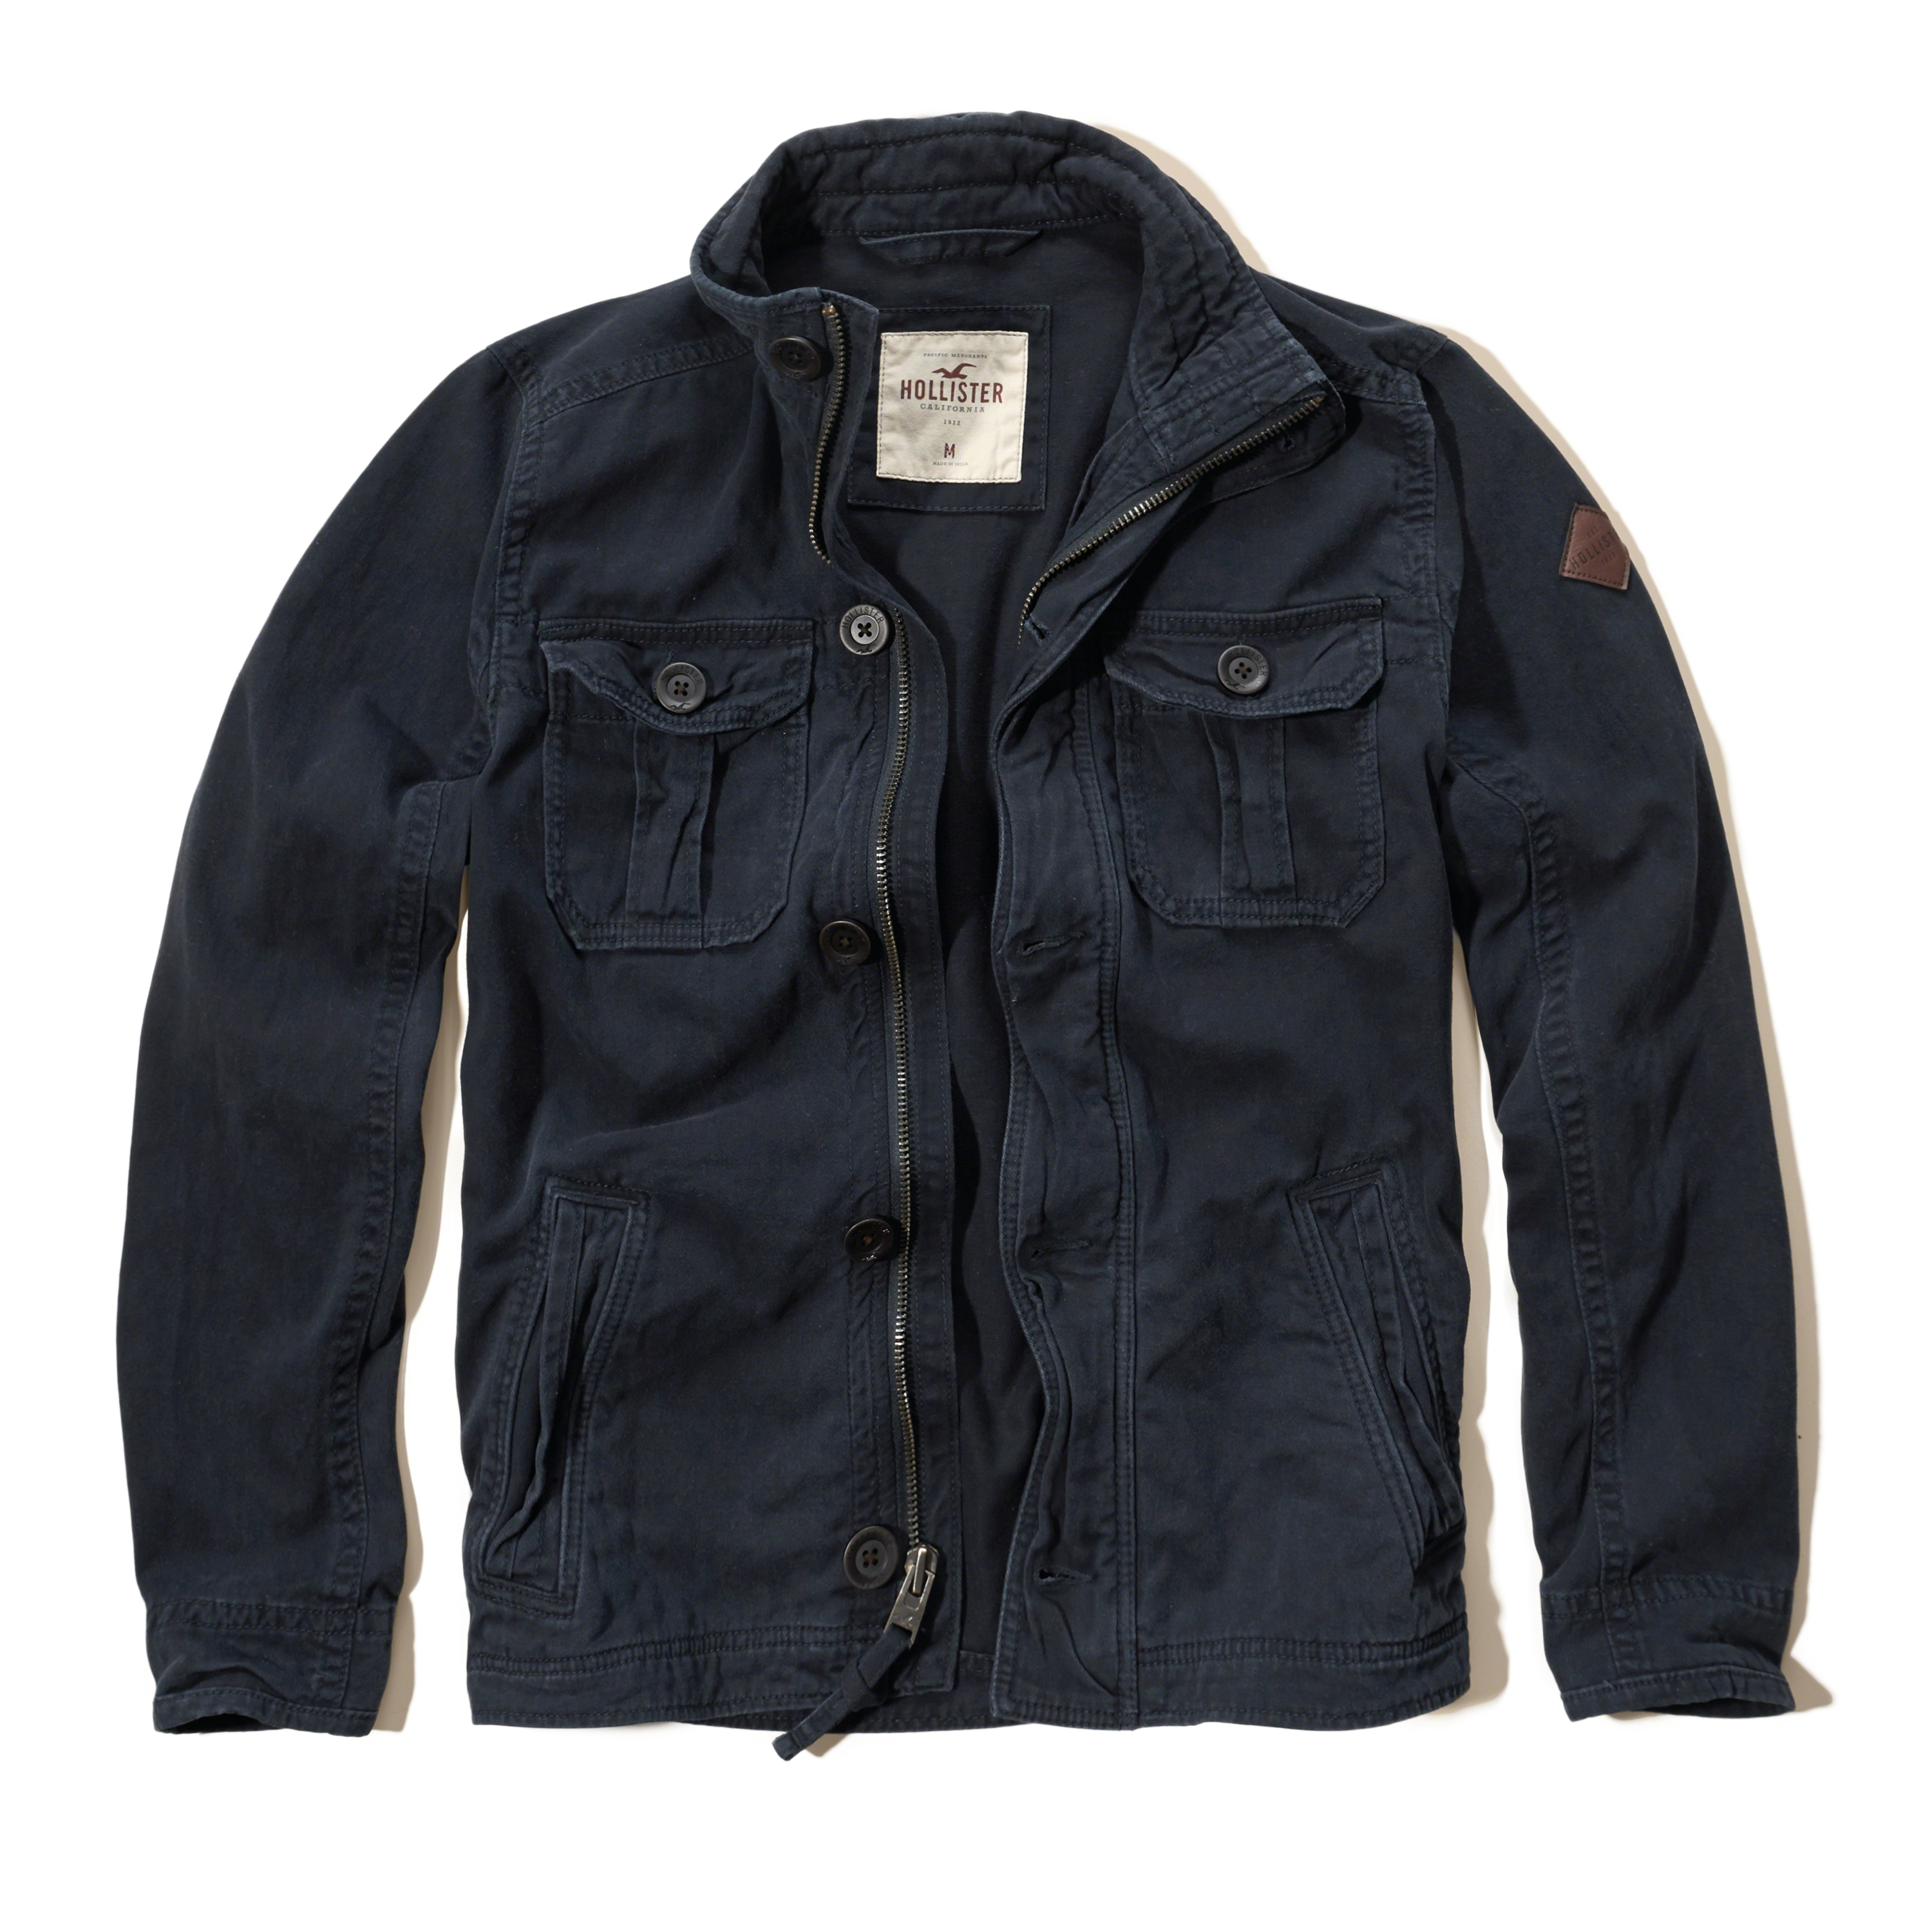 Men's rugged twill bomber jacket